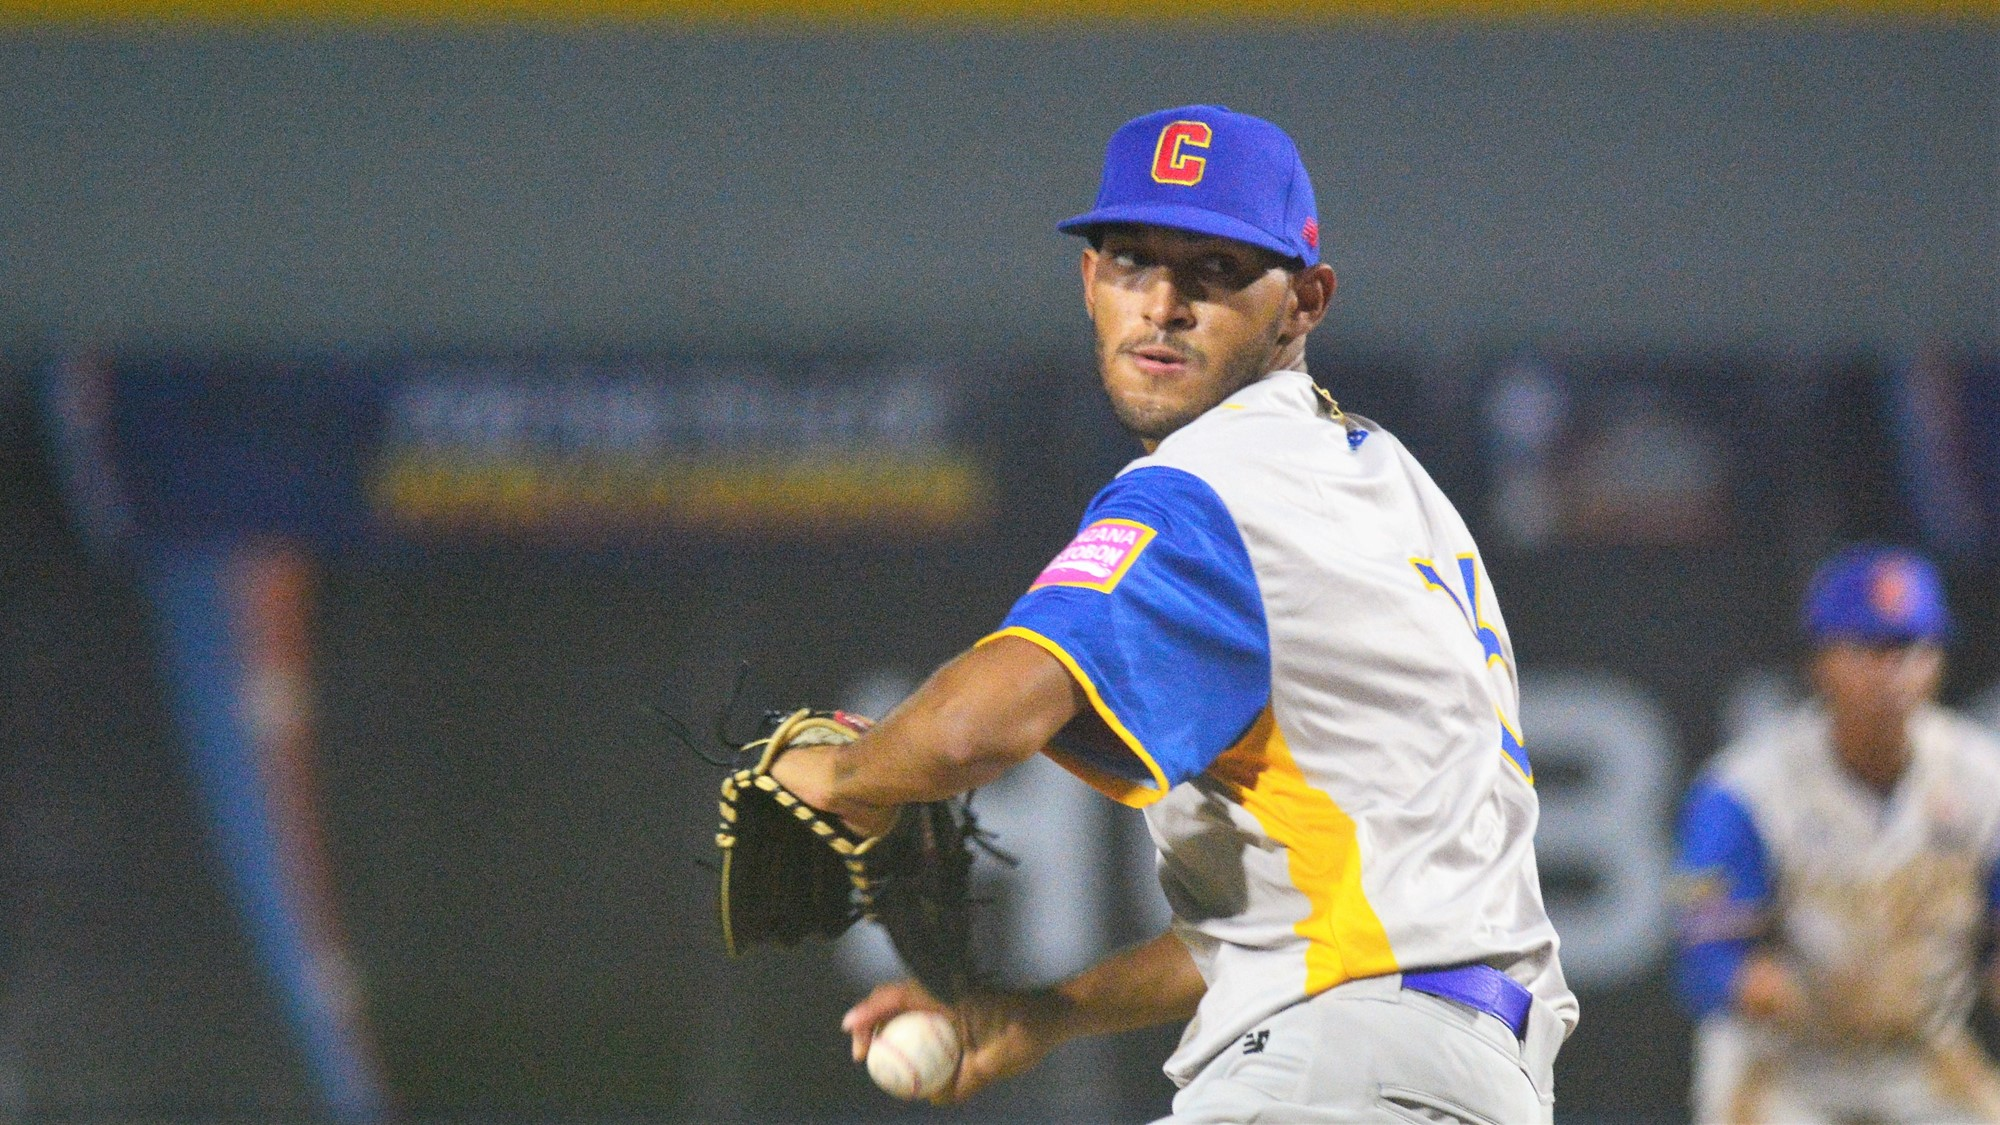 Juan Escorcia started for Colombia, the first of six pitchers who took the mound